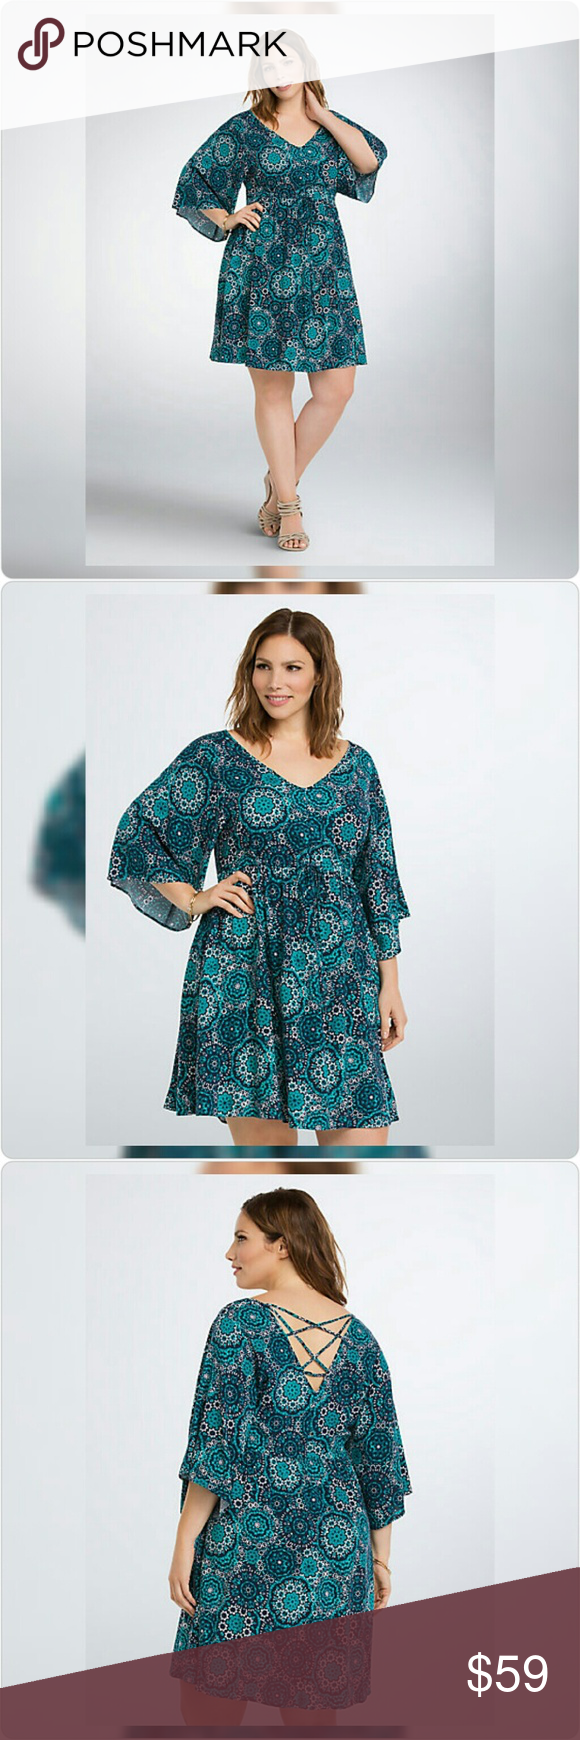 "NWT! Geo Print Lattice Back Dress NWT!  Torrid size 3/3x (22W-24W) ""This turquoise and blue geo print sundress is what bohemian dreams are made of, while the sweeping bell sleeves are oh-so flattering. The drawstring waist keeps it comfy, the strappy lattice back makes sure that you get a tan."" 43"" long from shoulder Rayon Wash cold, dry flat torrid Dresses"